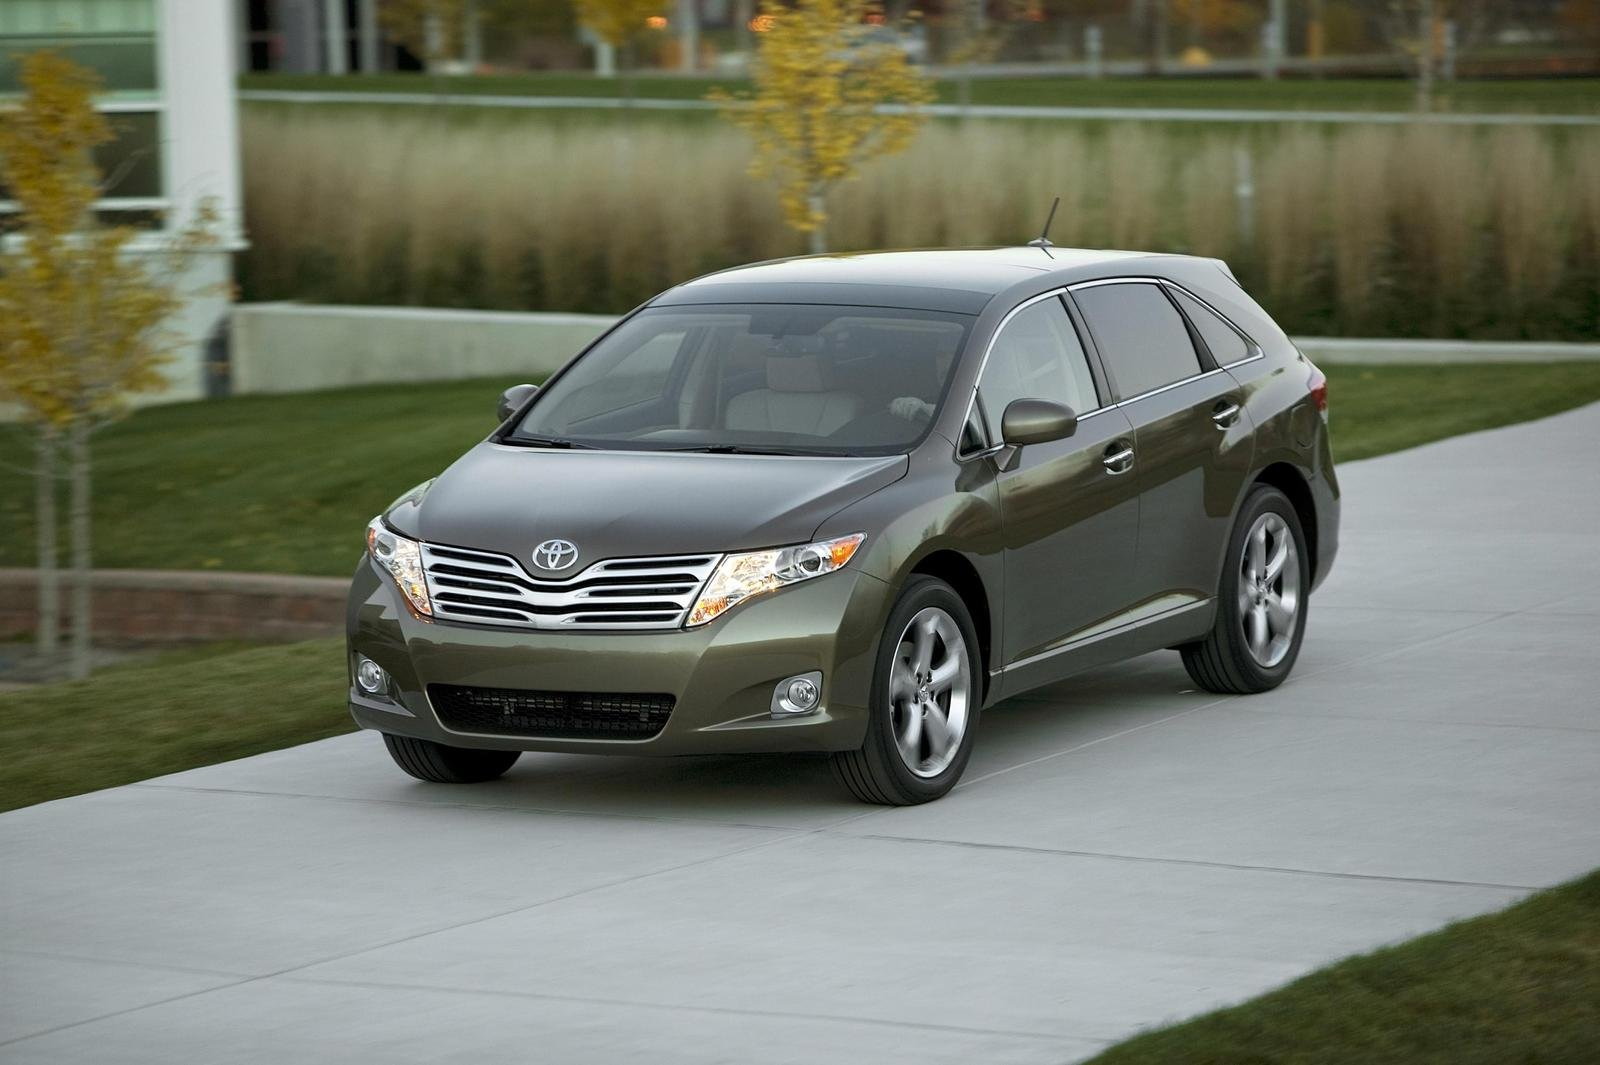 2009 toyota venza picture 225835 car review top speed. Black Bedroom Furniture Sets. Home Design Ideas